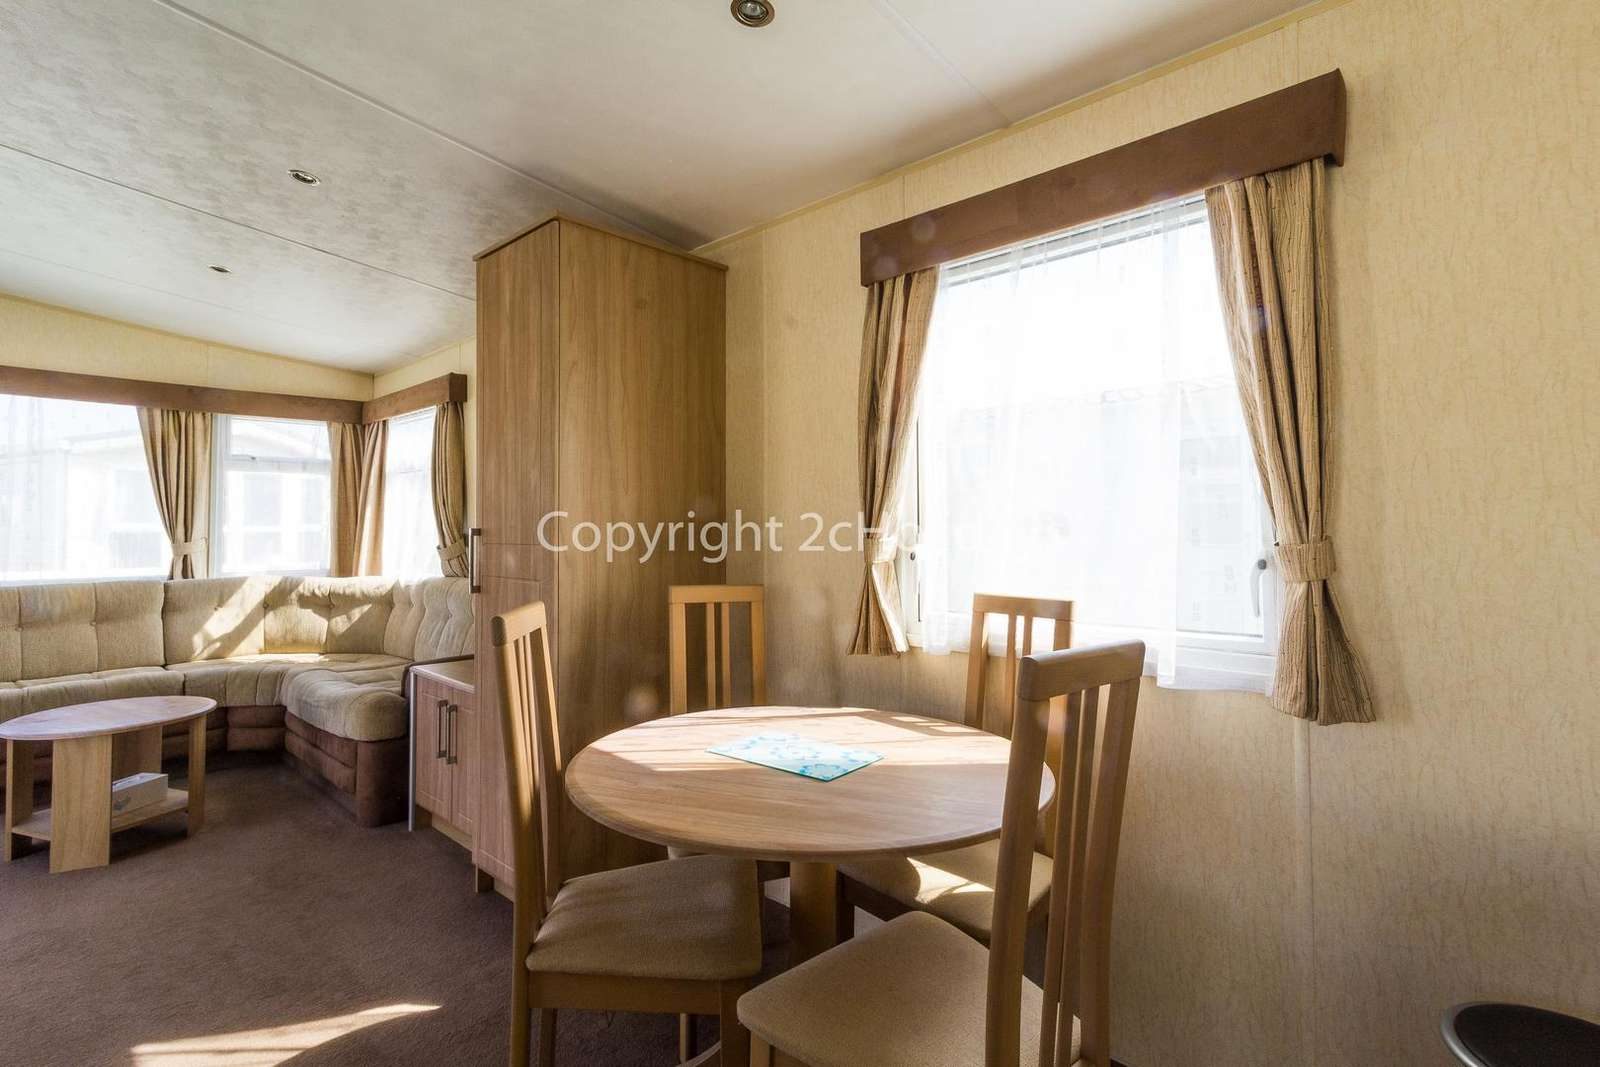 Great place to dine with your family or friends in this self-catering accommodation